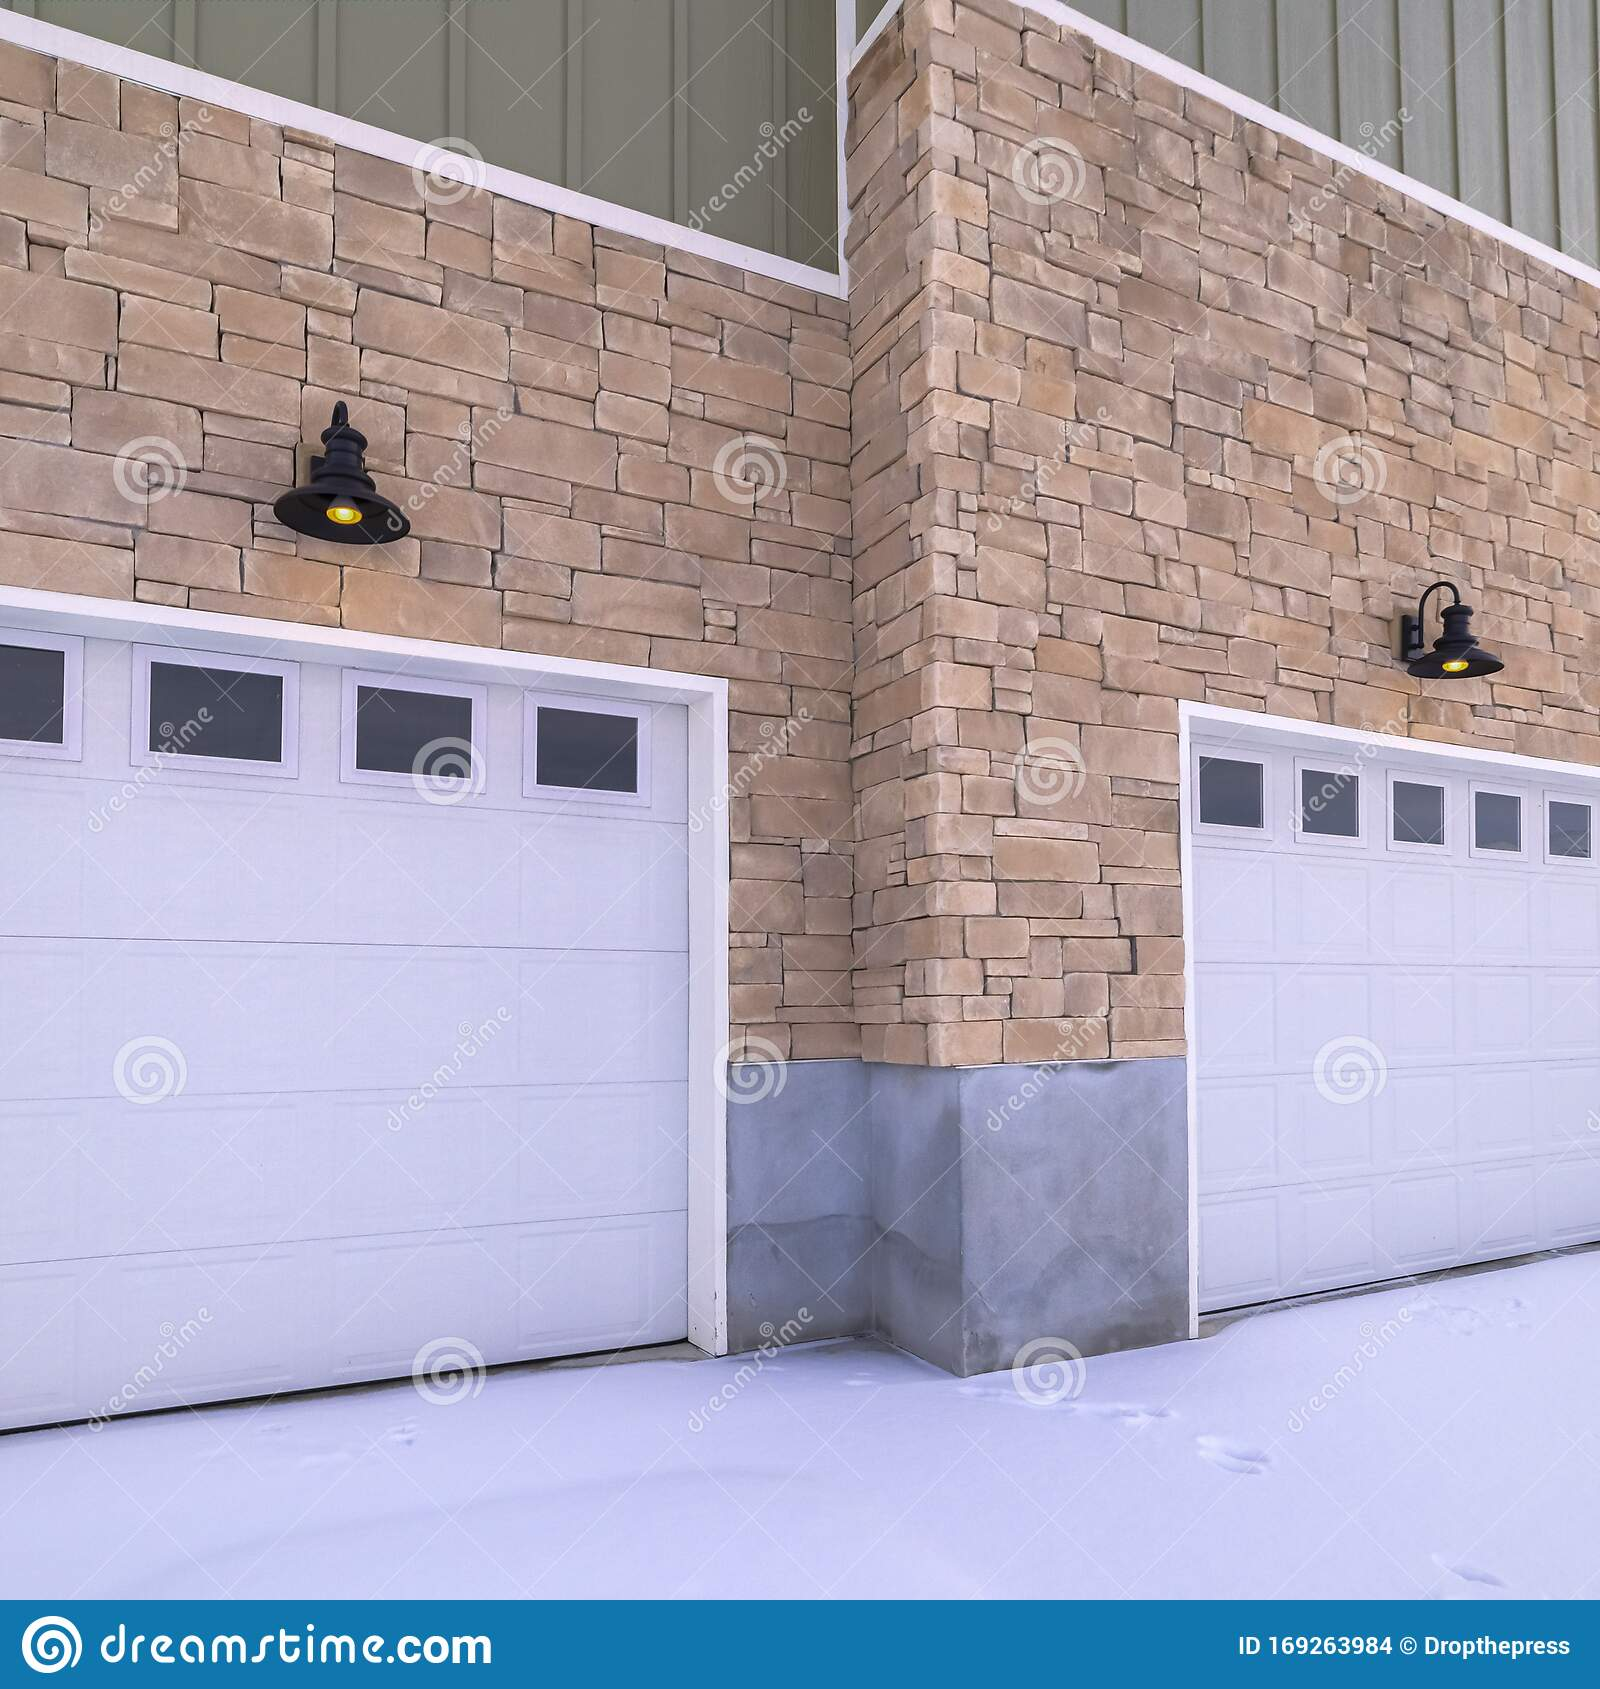 Square Snow Covered Forecourt With Double Garage Doors Stock Photo Image Of Modern Doorway 169263984